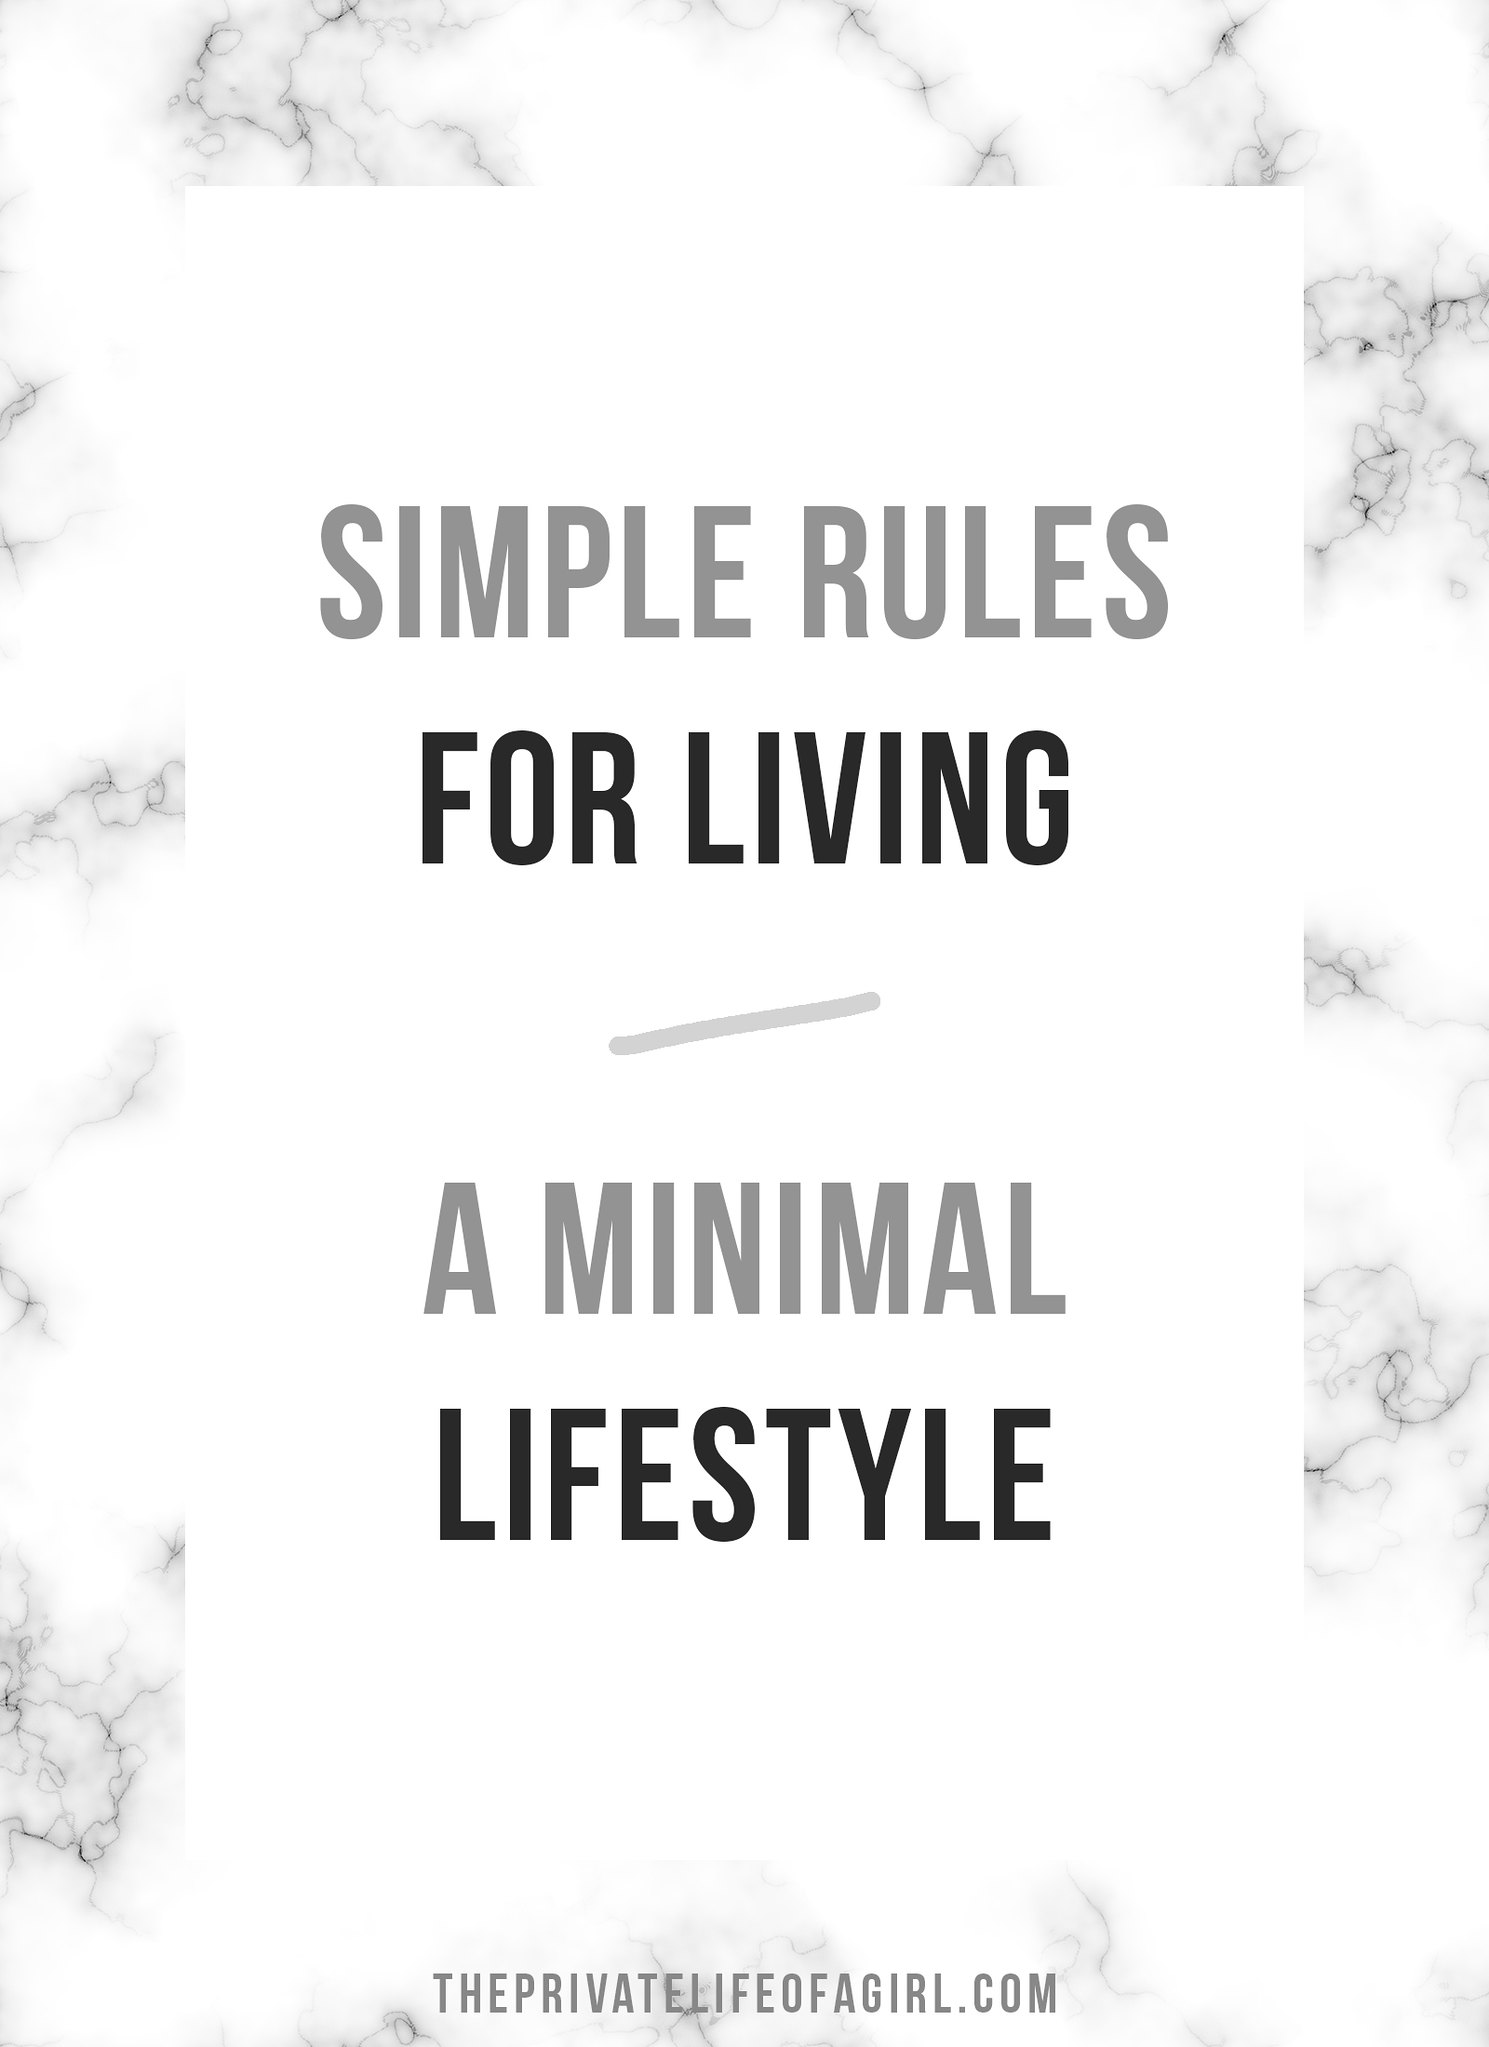 Simple Rules For Simpler Living